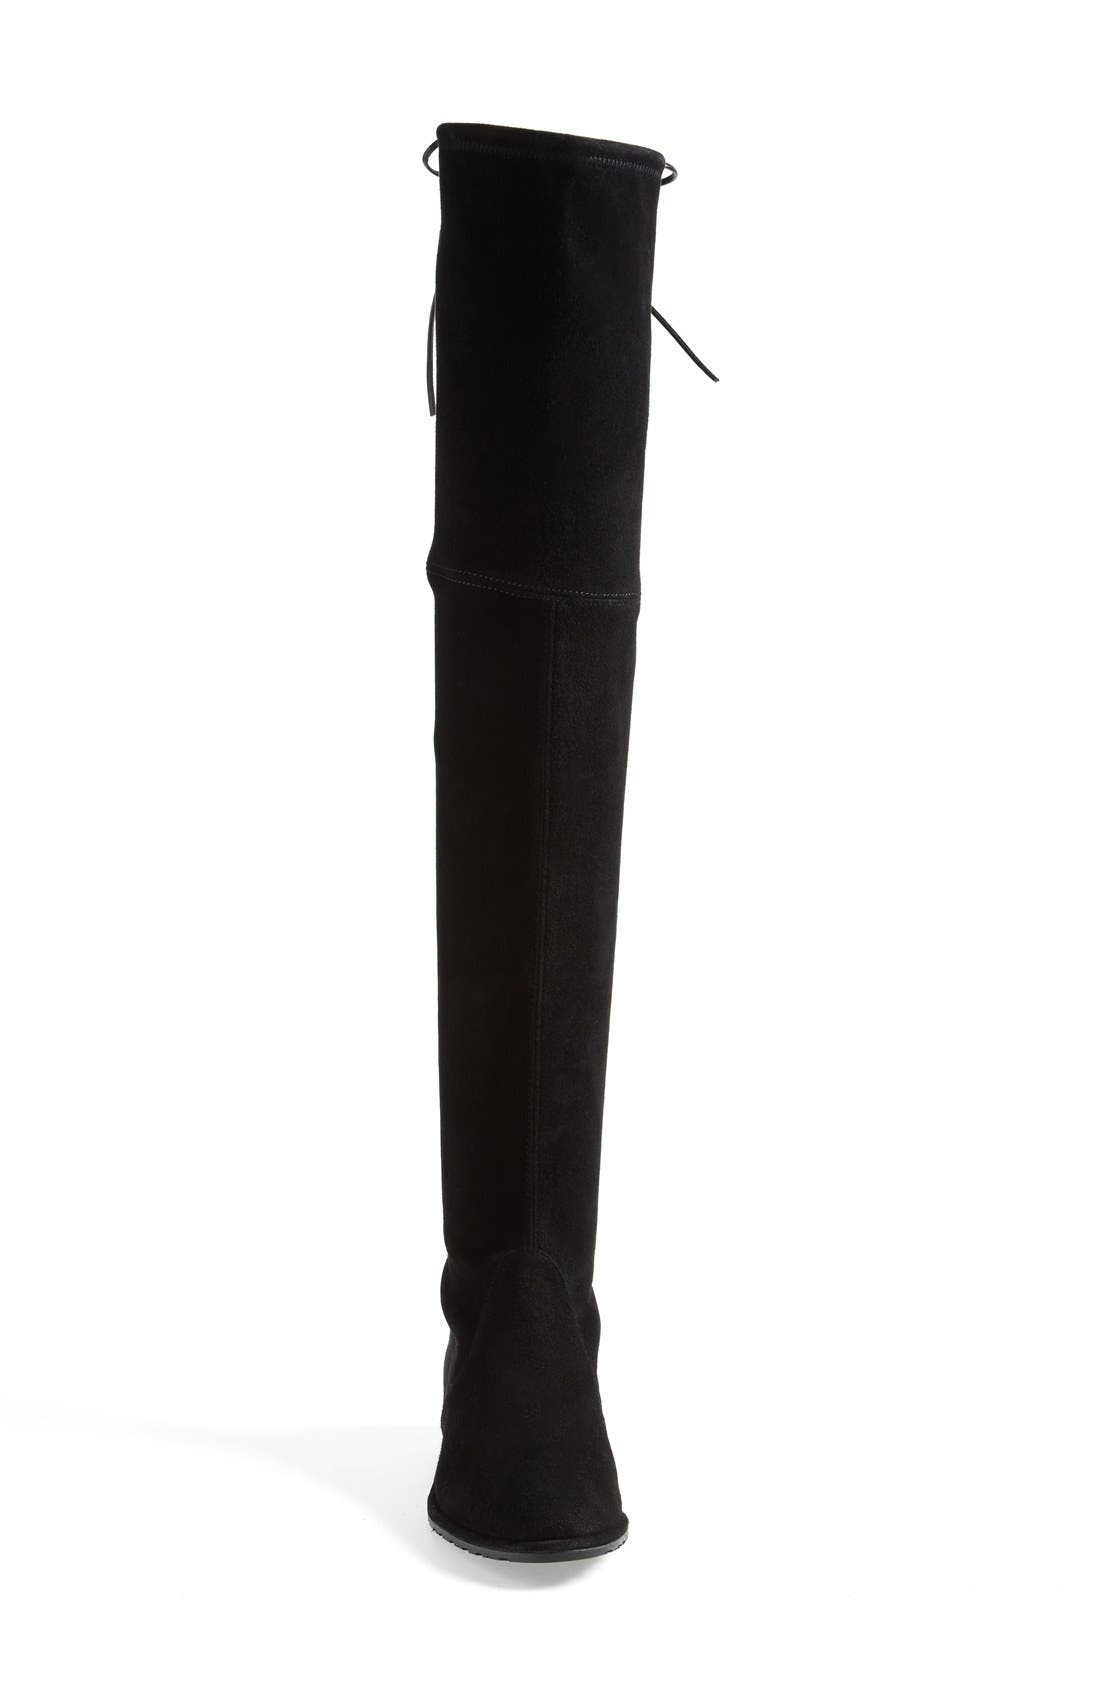 Alternate Image 3  - Stuart Weitzman 'Lowland' Over the Knee Boot (Women)